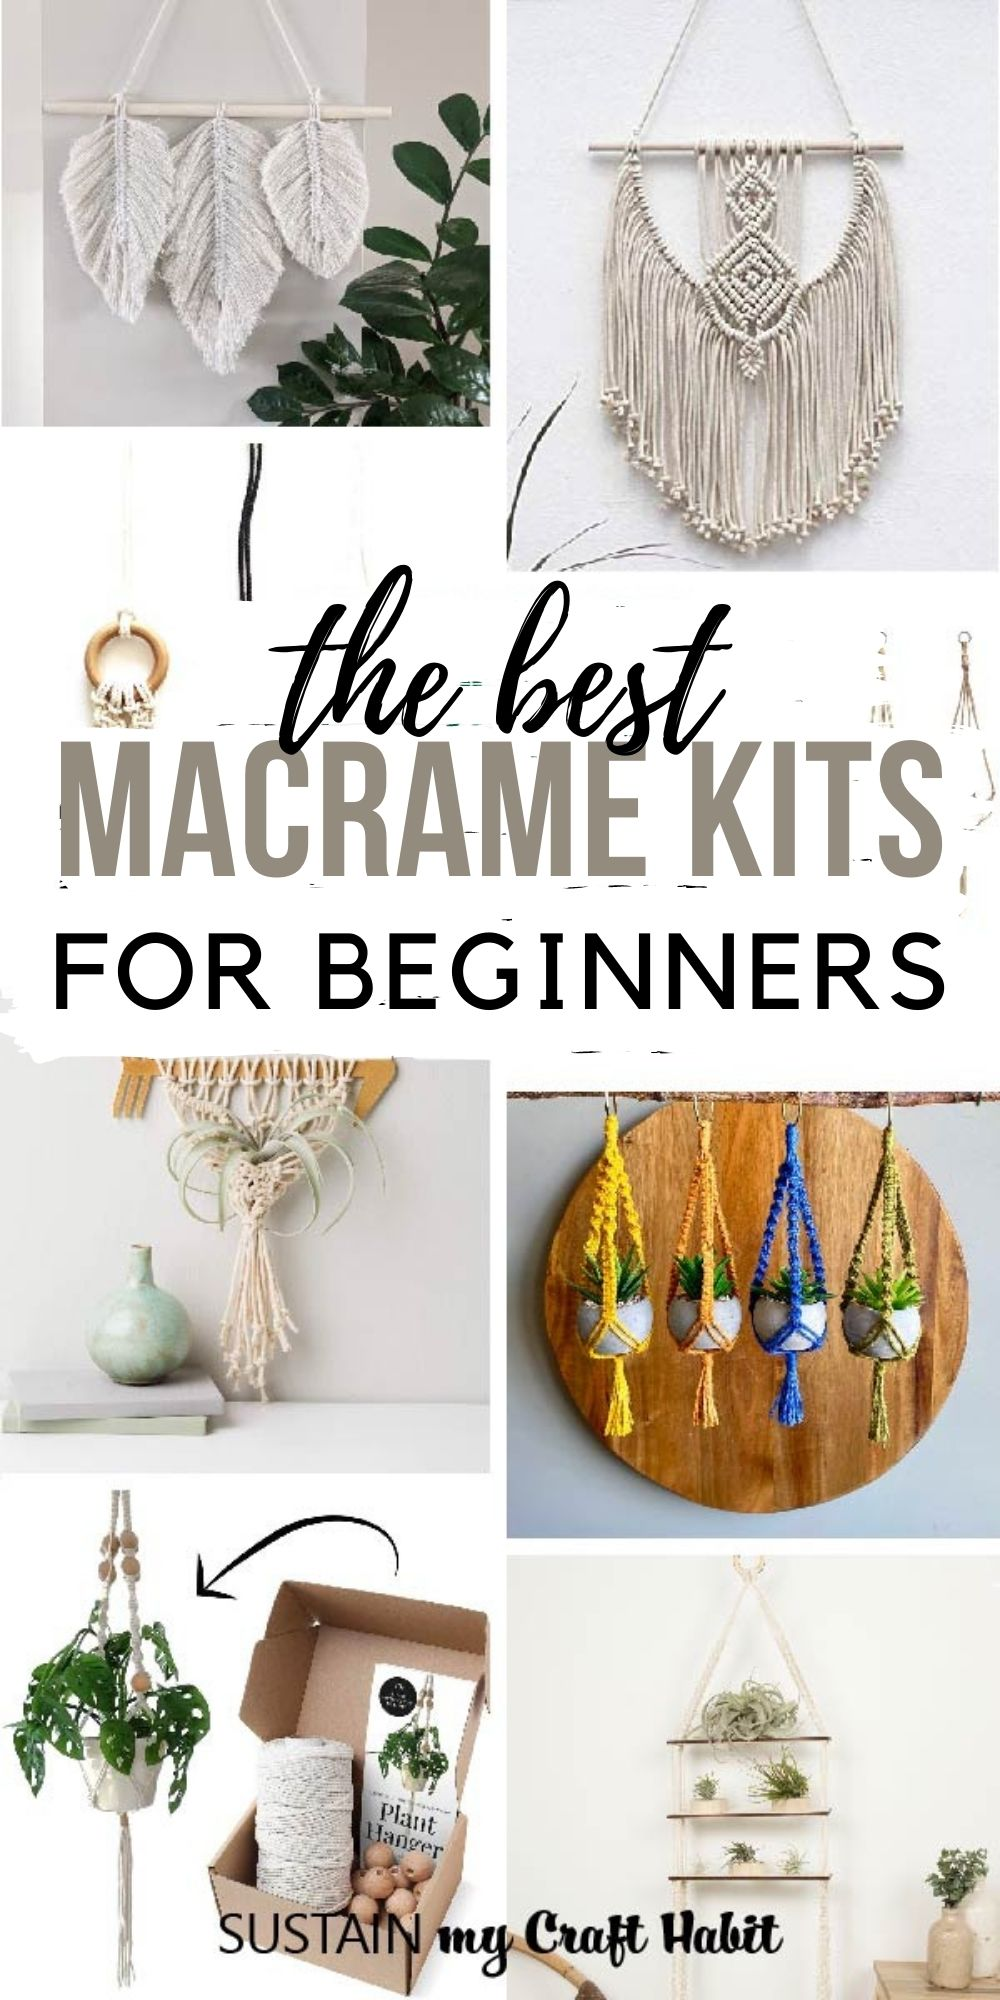 Collage of images showing DIY macrame kits including wall hangings, macrame planters, feathers and more.